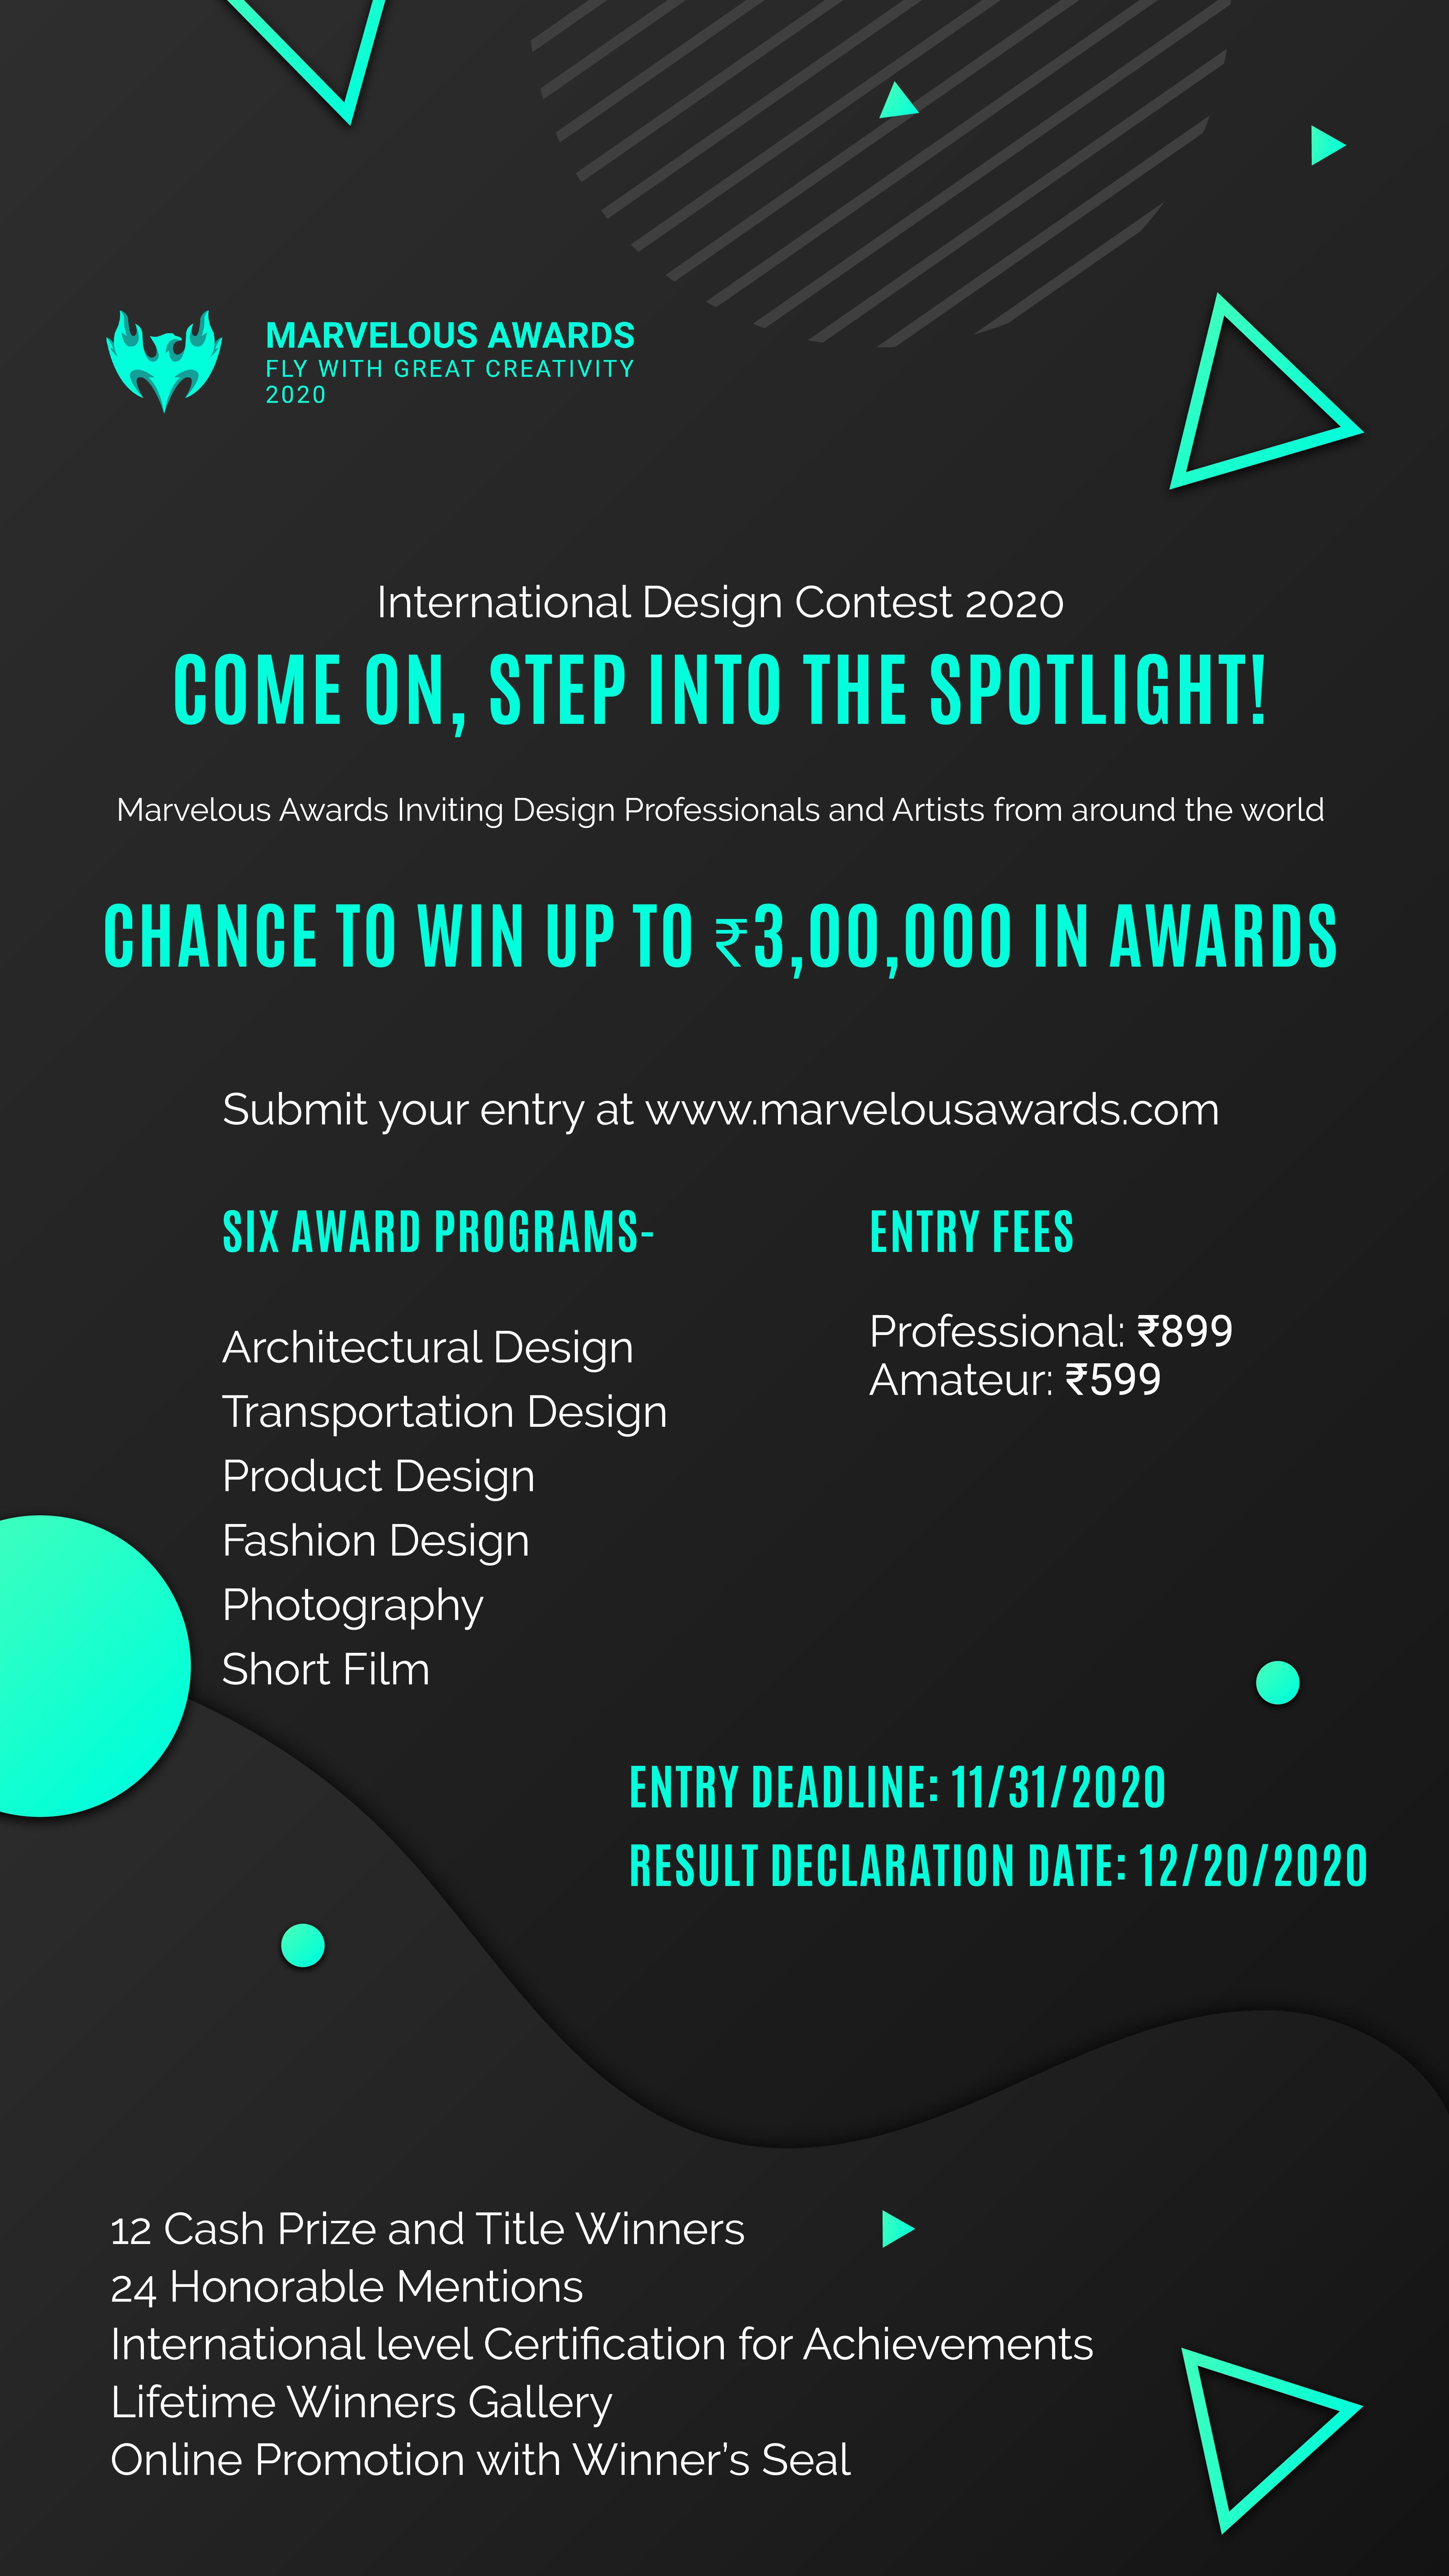 Call for entry: Marvelous Awards International Design Contest 2020 The world awaits you. Come on! Step into the spotlight. Professional and Amateur Designers have an opportunity to win over $4000 in awards. Fly with great creativity. Enter the awards today at www.marvelousawards.com #ArchitecturalDesign #TransportDesign #ProductDesign #FashionDesign #Photography #Shortfilm Follow @marvelousawardsofficial for all updates. #InternationalDesignContest #Contest2020 #Design #DesignAwards